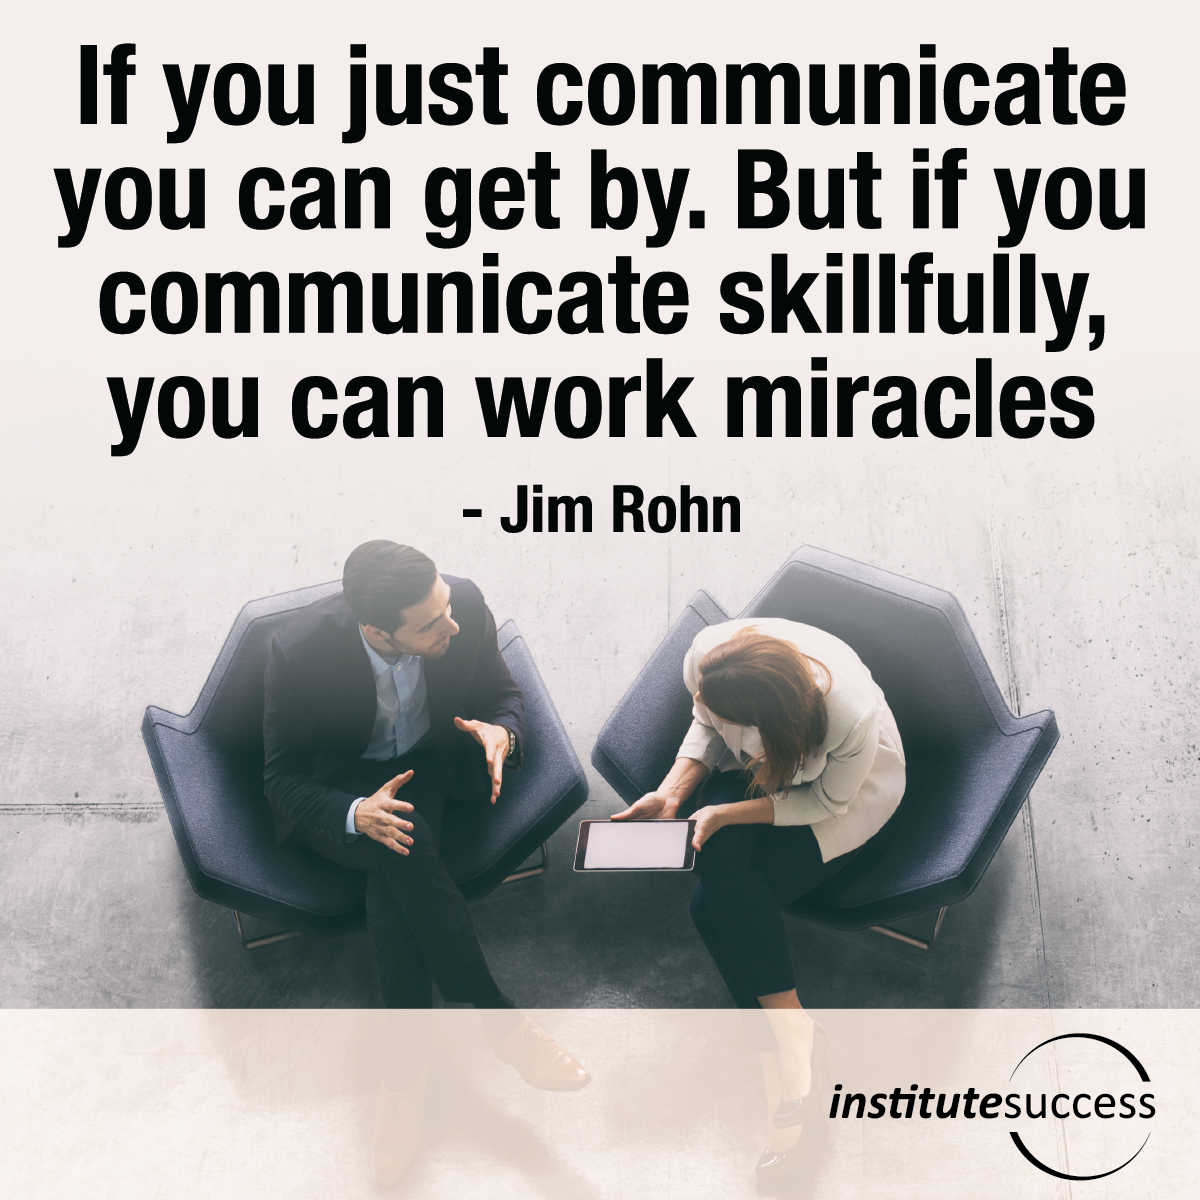 If you just communicate you can get by. But if you communicate skillfully, you can work miracles – Jim Rohn